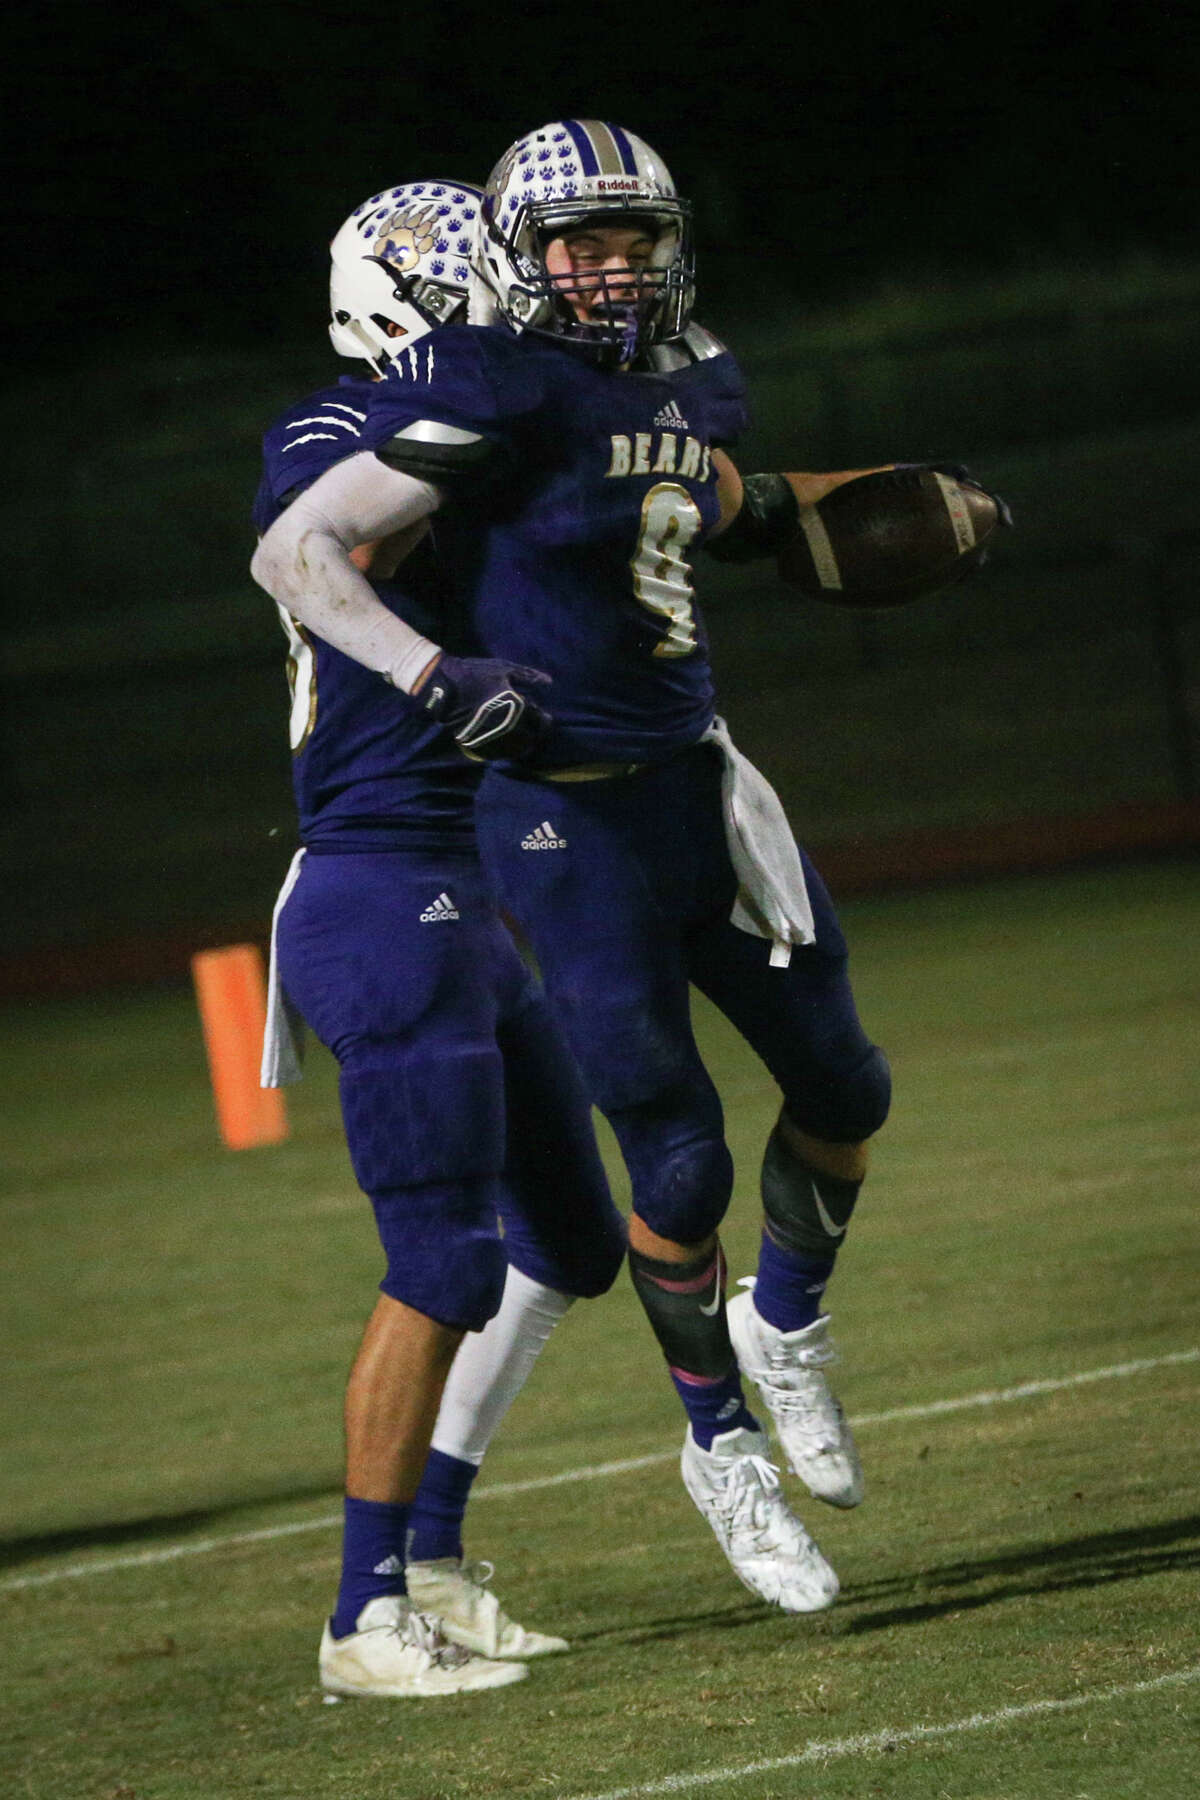 CLASS 6A 19. Montgomery (6-2) This week: vs. The Woodlands (8-0), 7:30 p.m. Friday at Woodforest